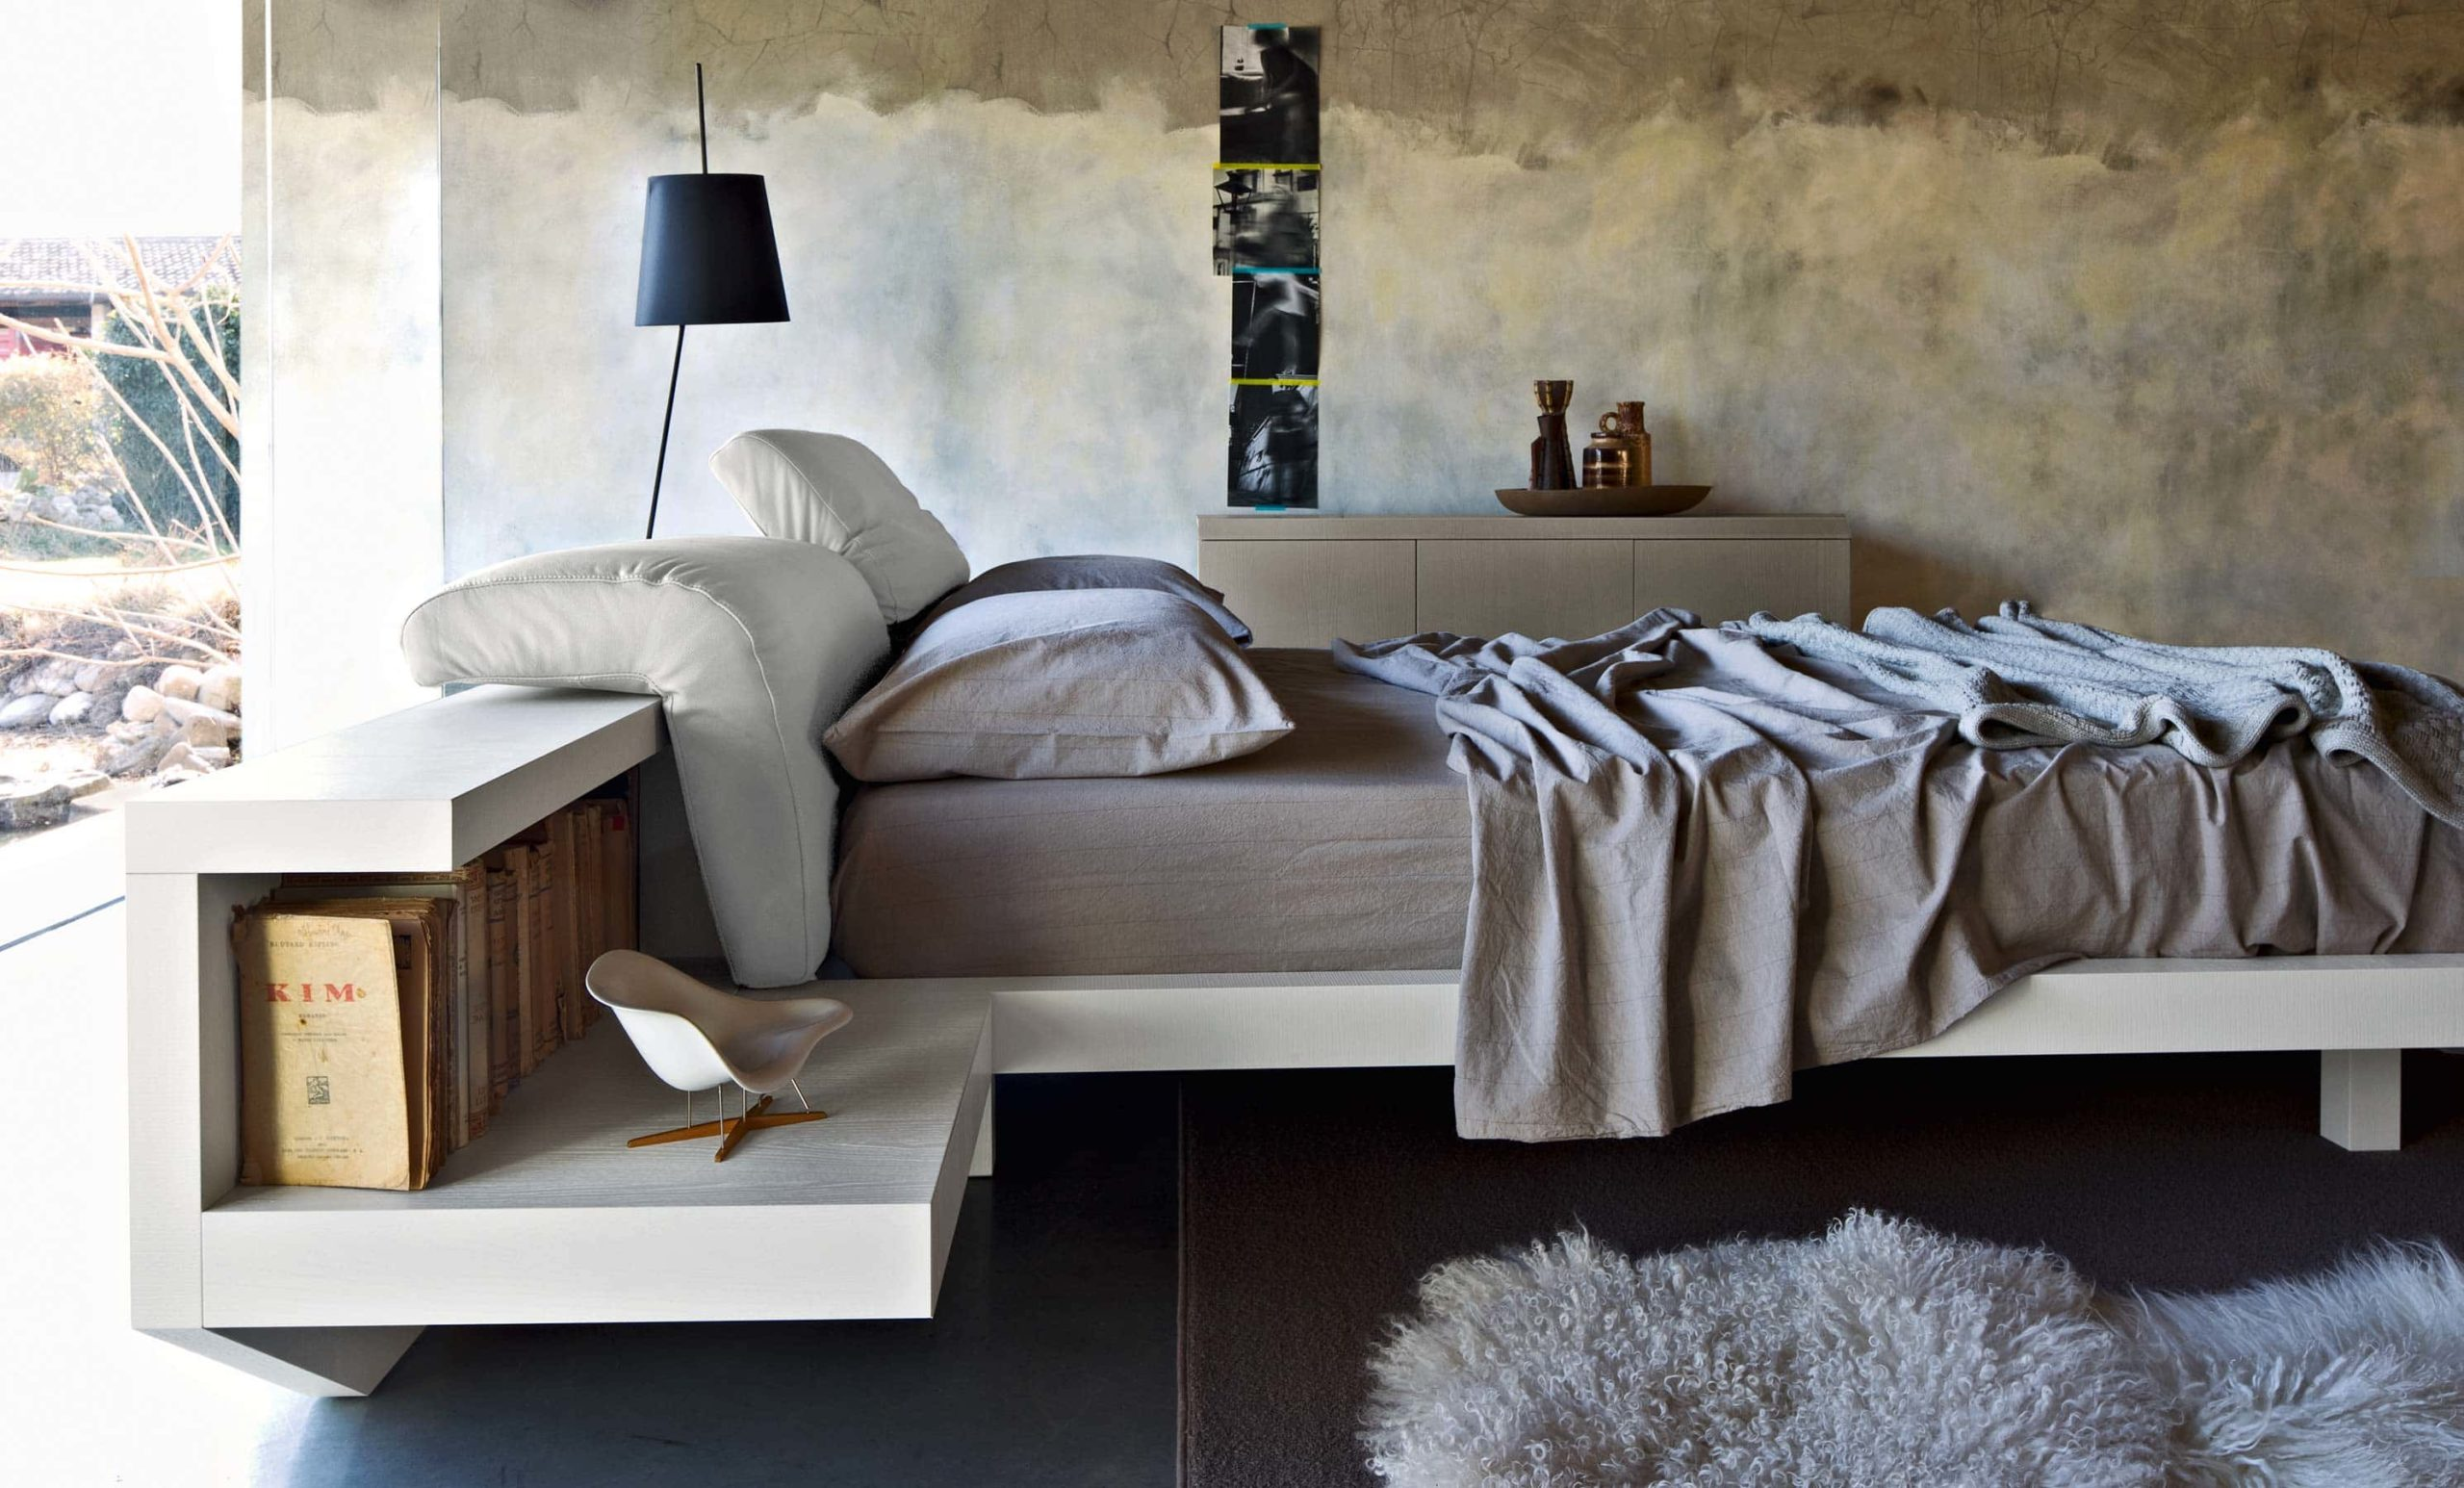 2MD Beds and Furniture for Bedrooms- Tomasella - Zanette